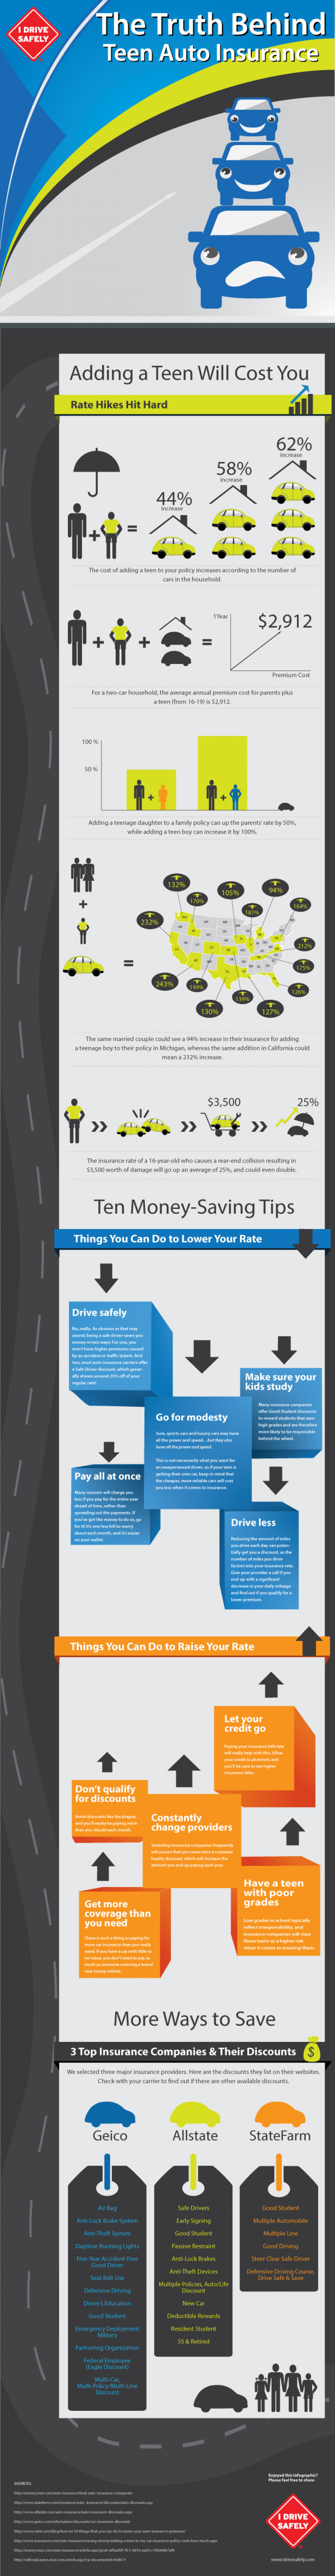 The Truth Behind Teen Auto Insurance Infographic